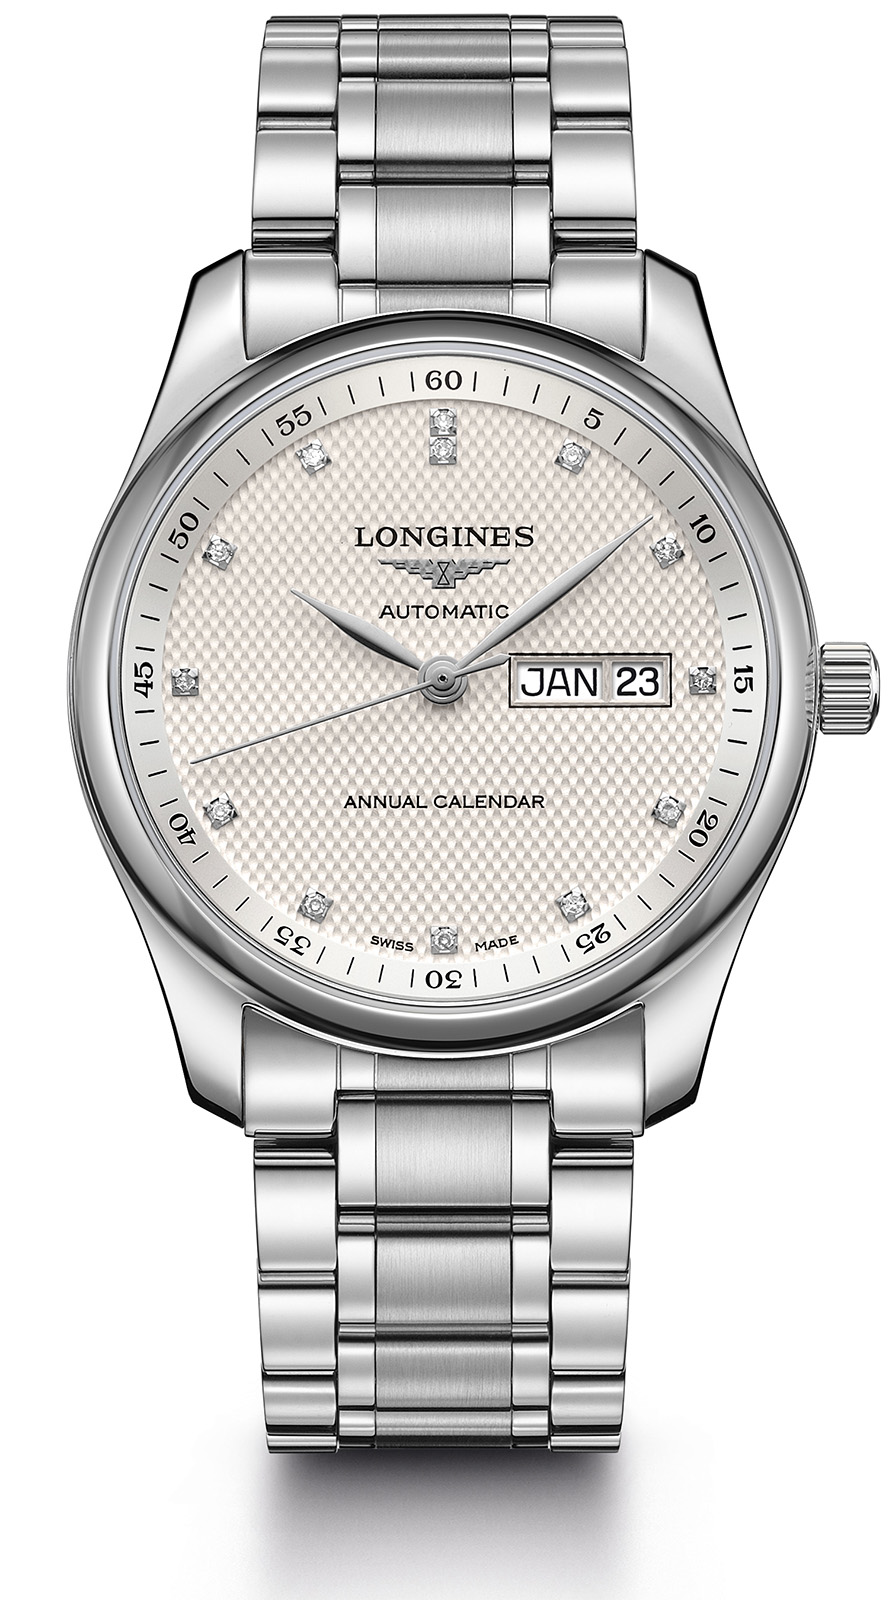 The Longines Master Collection Annual Calendar L2.910.4.77.6